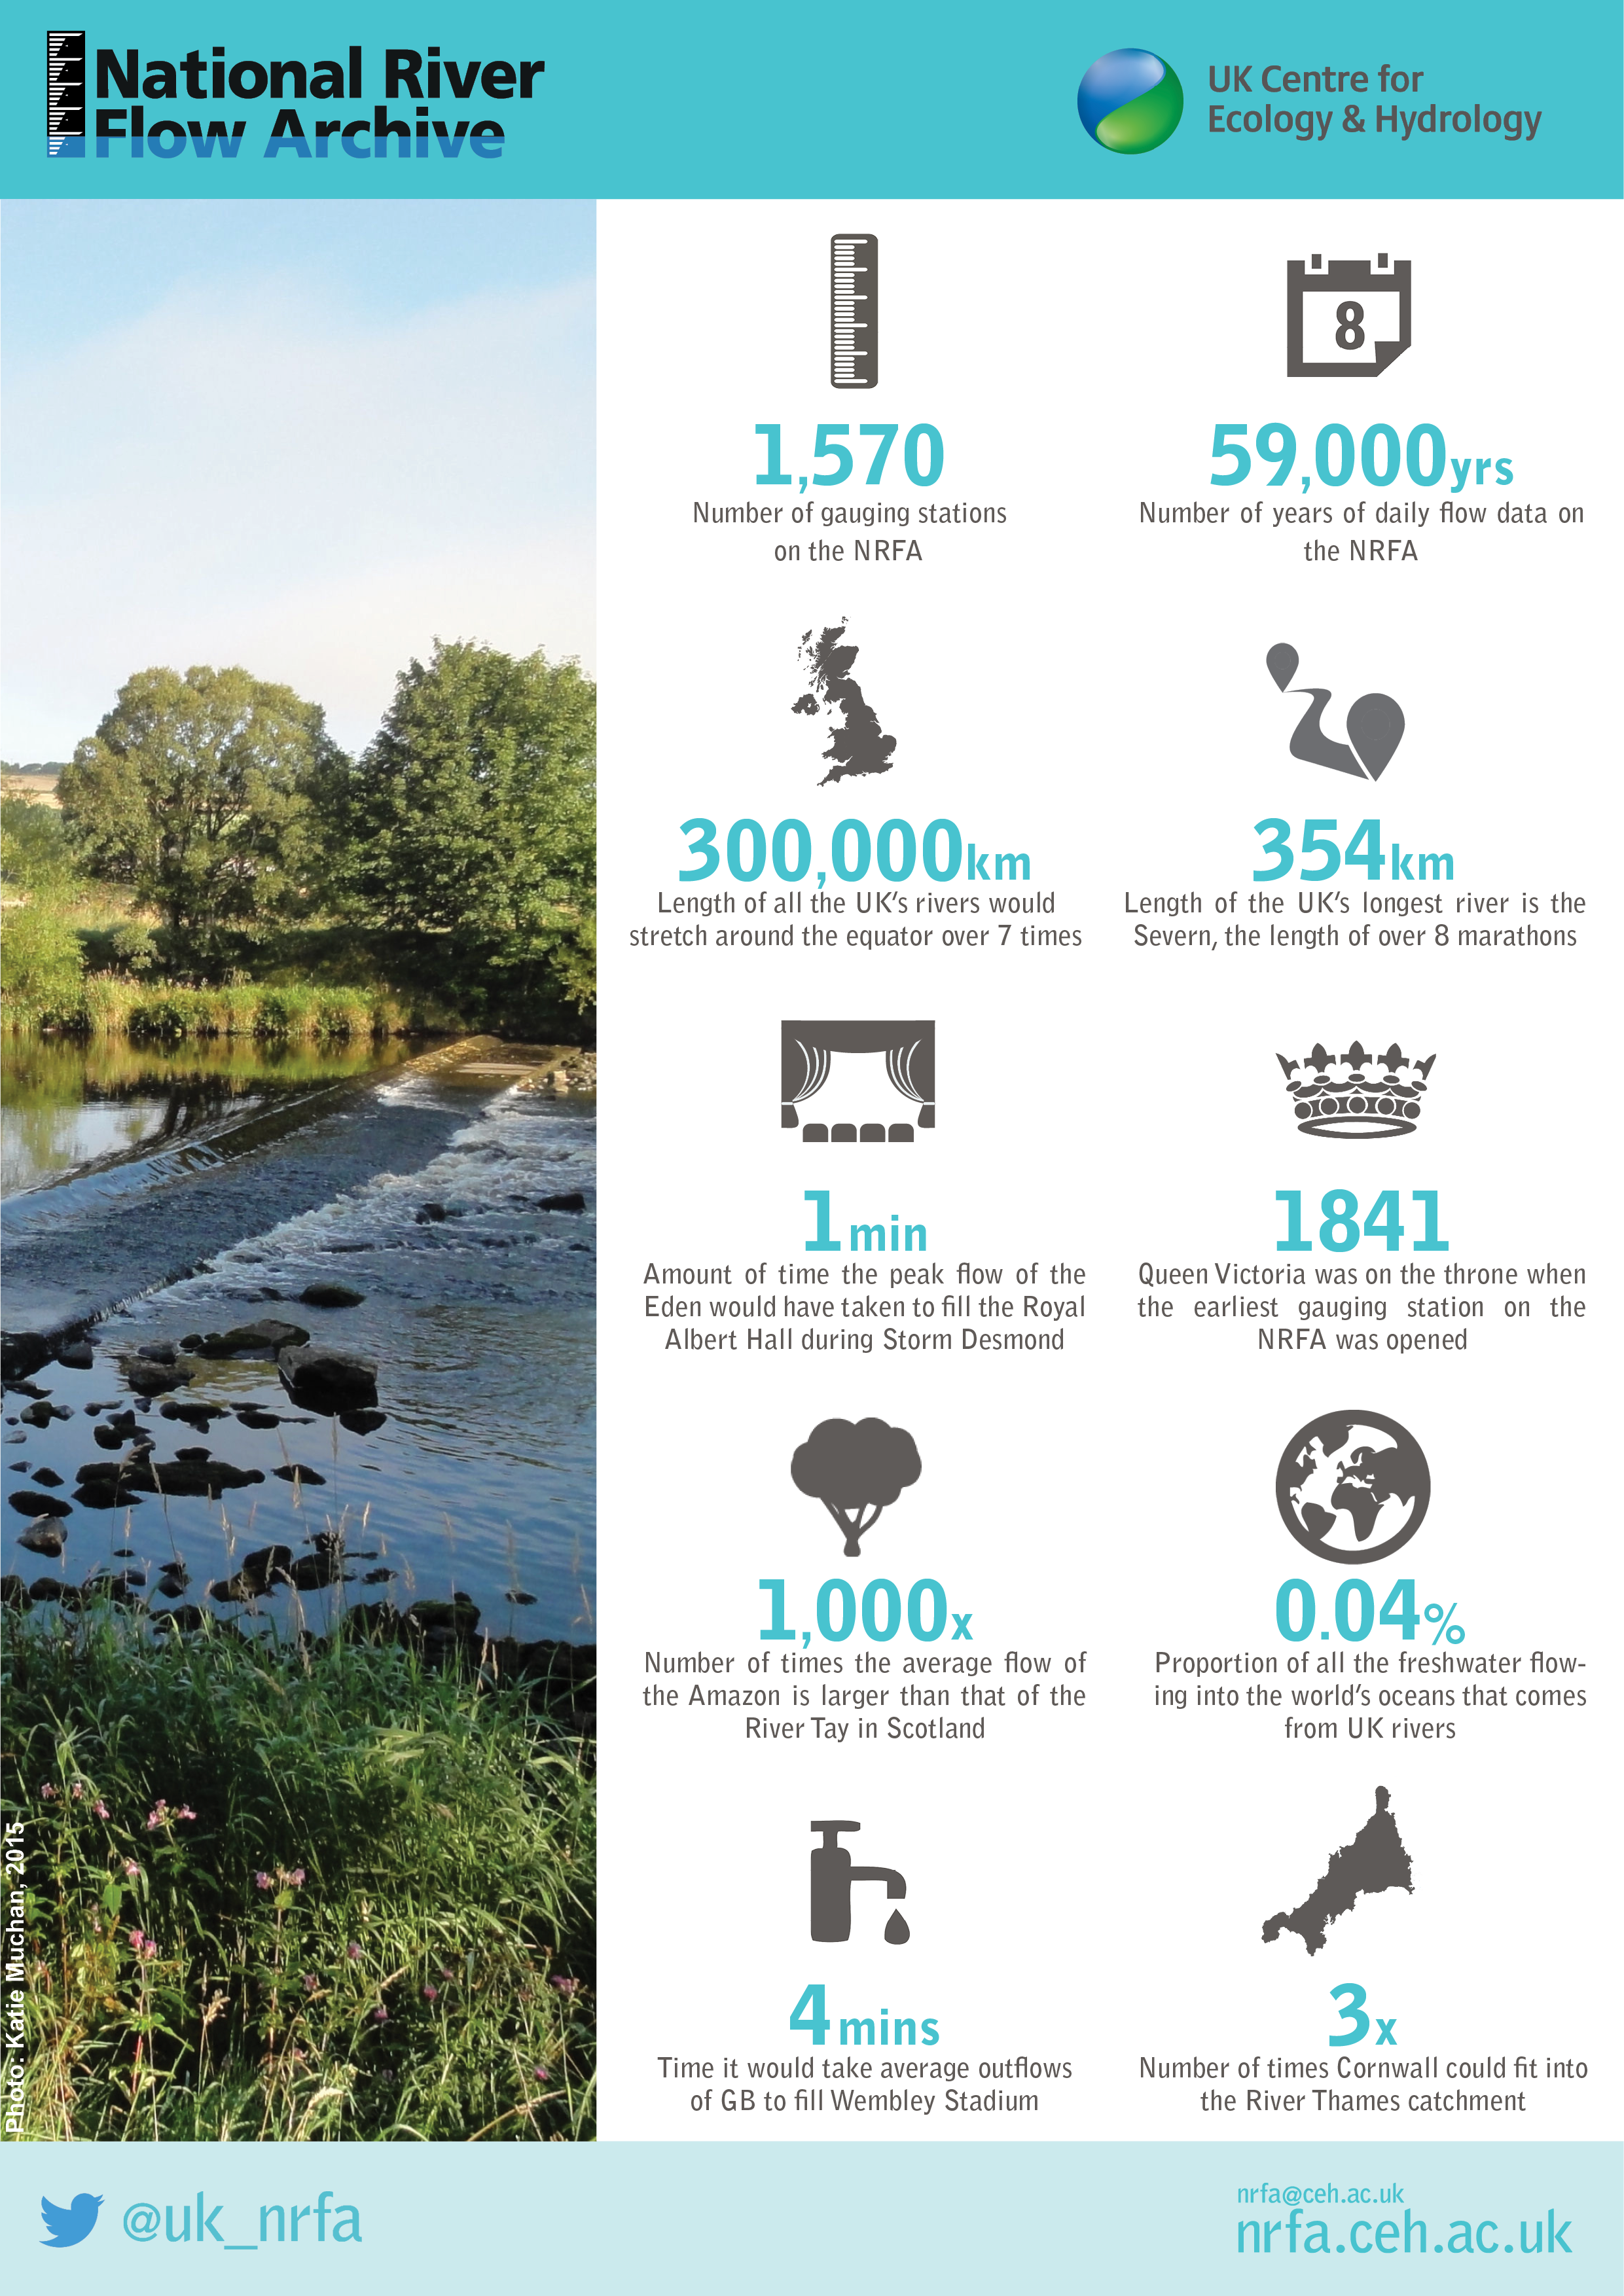 Facts about the National River Flow Archive